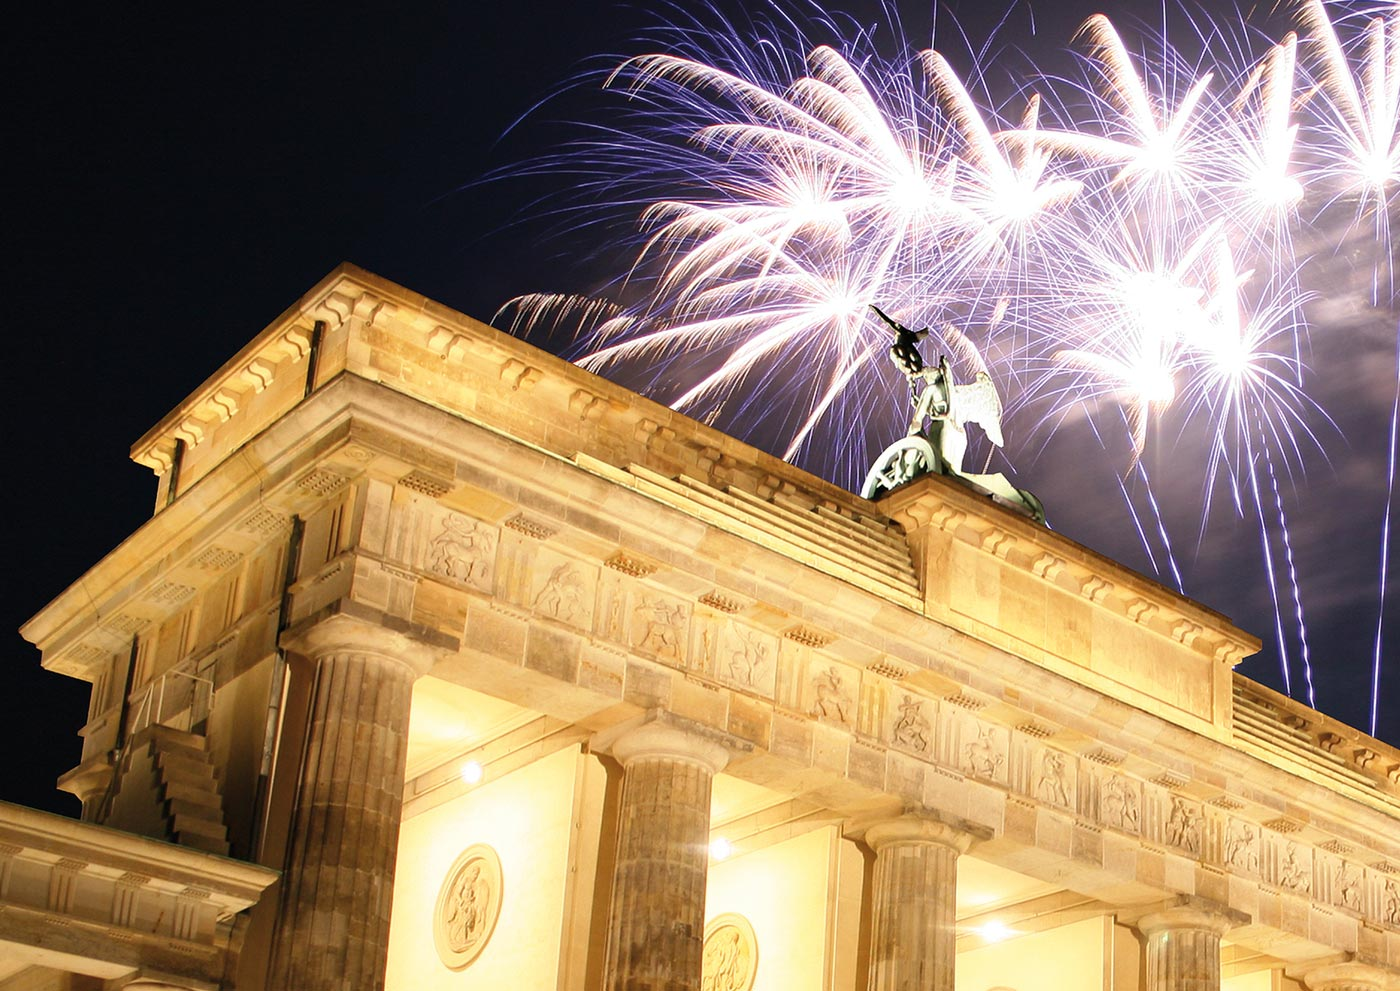 Single party berlin silvester 2015 3D ContentCentral-Hilfe - 3D ContentCentral Hilfe